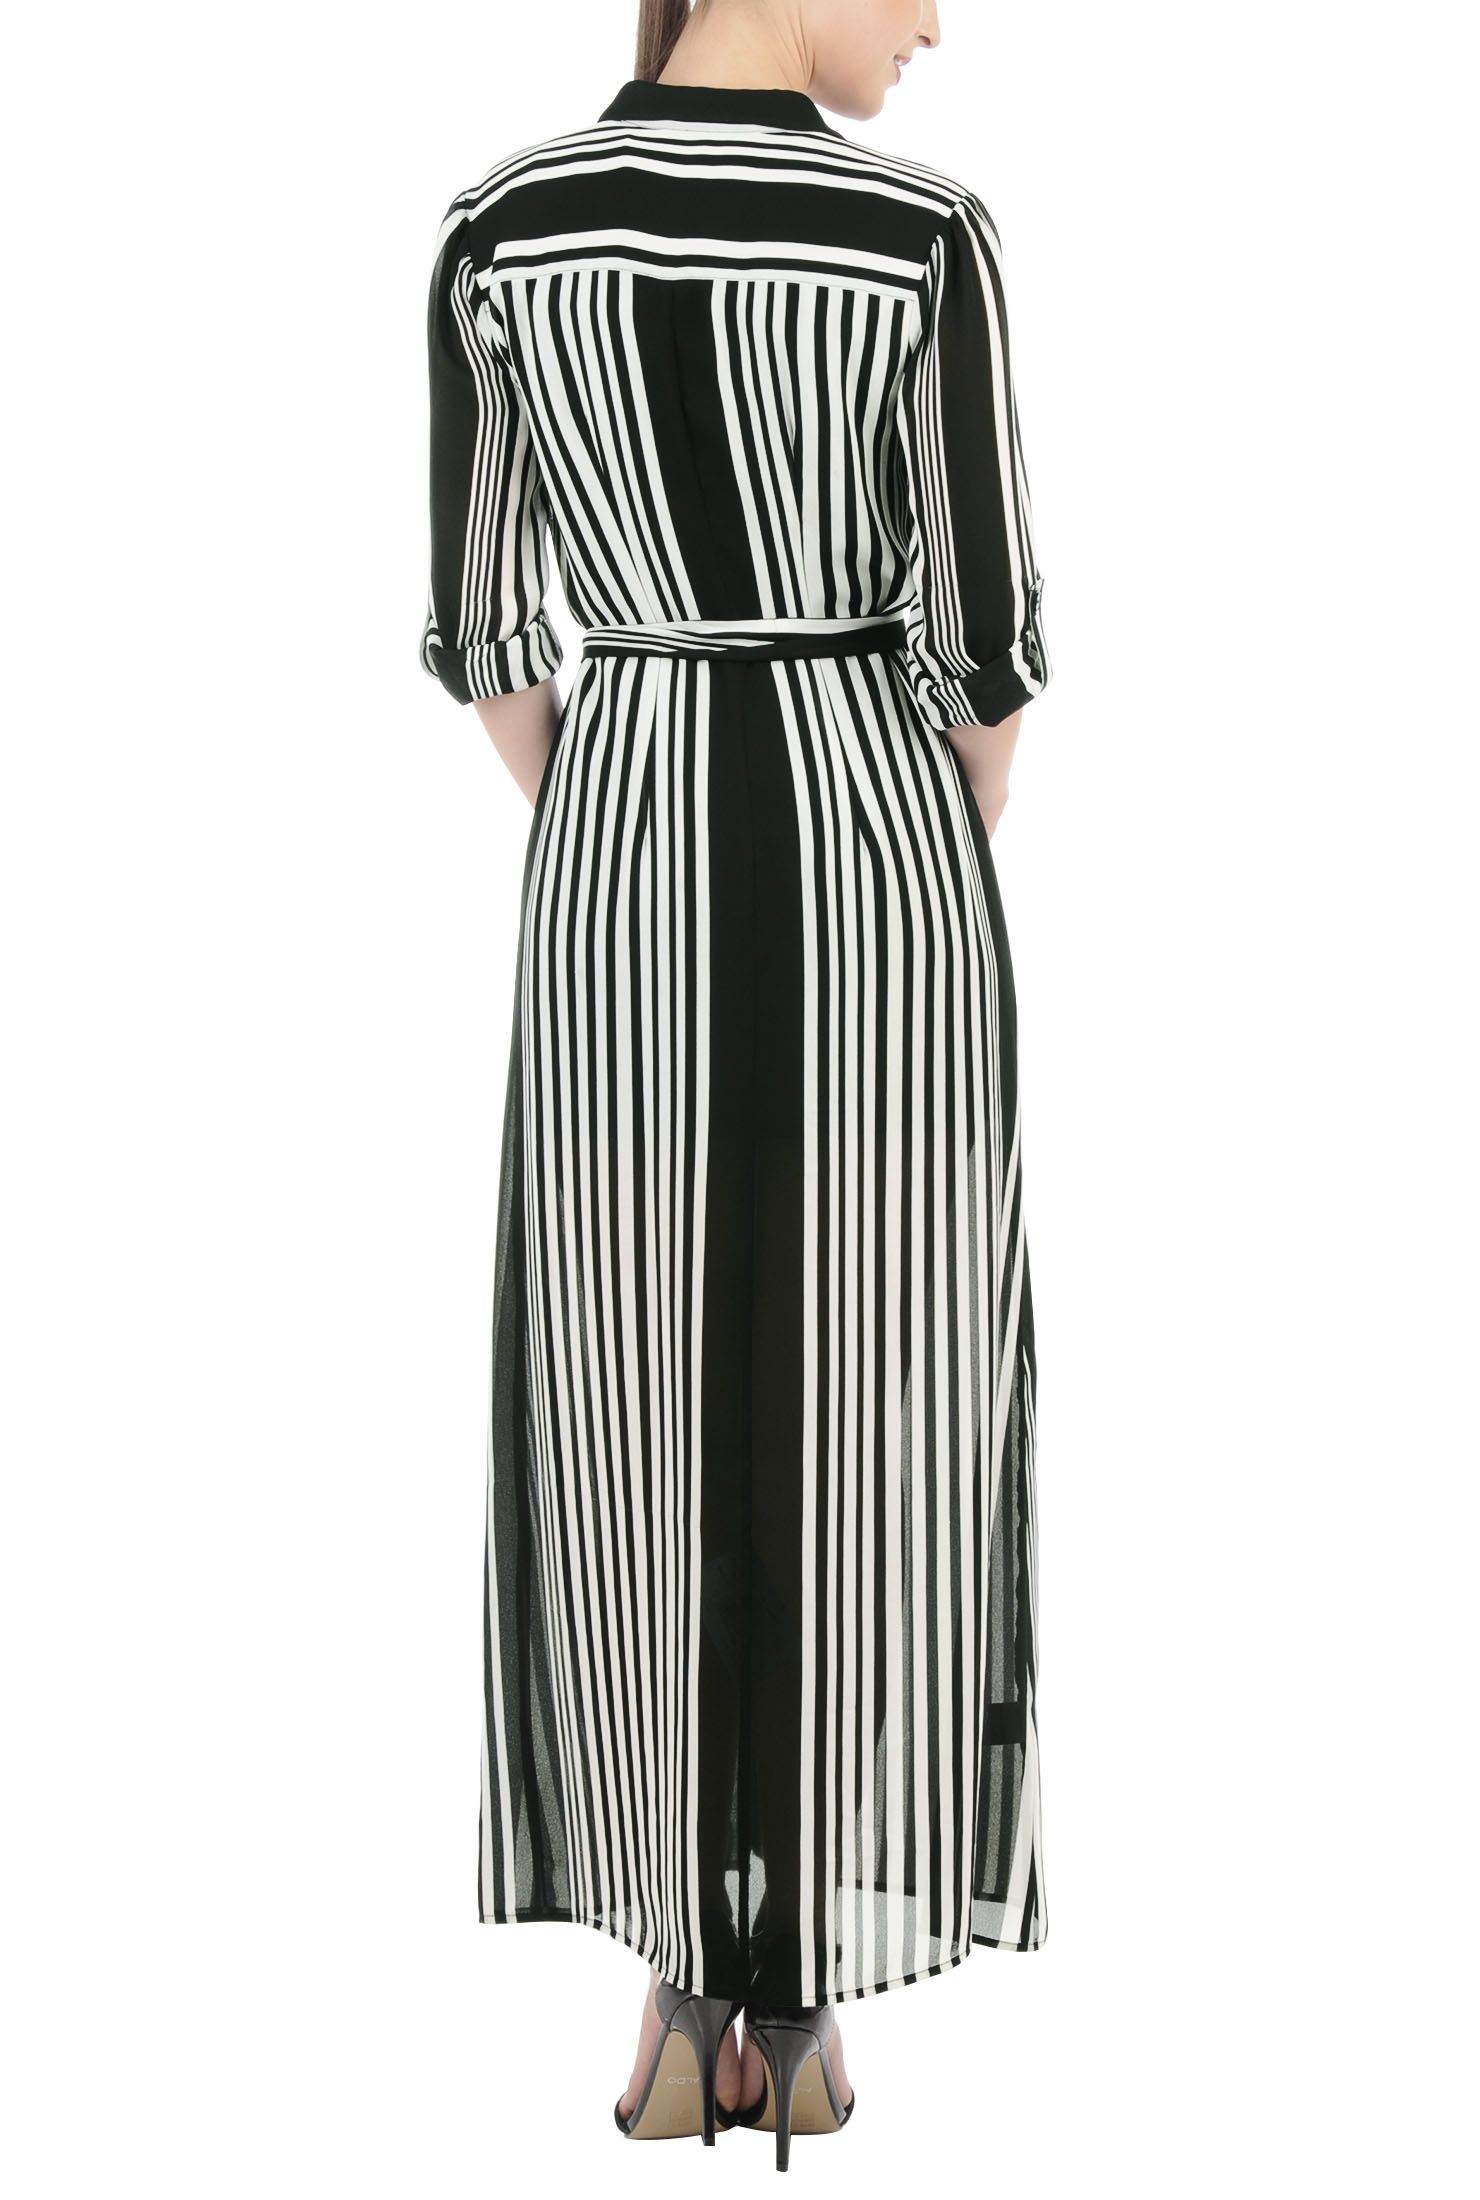 Stripe Georgette Maxi Shirtdresses, Black And White Polyester Georgette Dresses Shop womens designer dresses   A-line   A-line dress   A-line Dresses   A-line Casual Dresses   A-line Bridesmaid Dresses -   eShakti